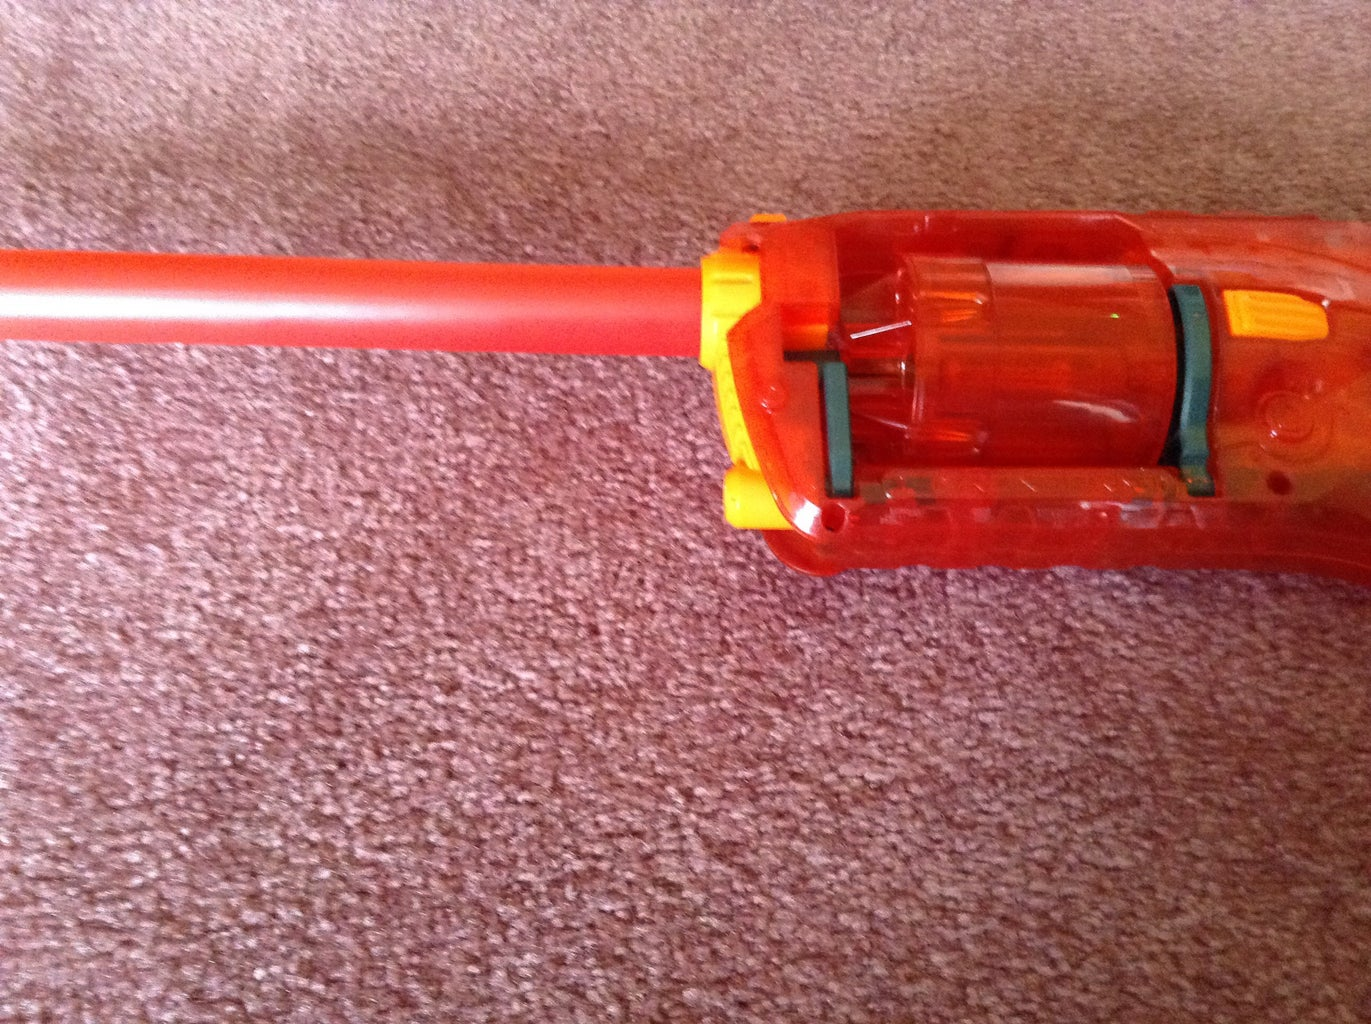 Twist the Red Tube Into the Strongarm's Muzzle Carefully Until You Think It Is Ok to Stop